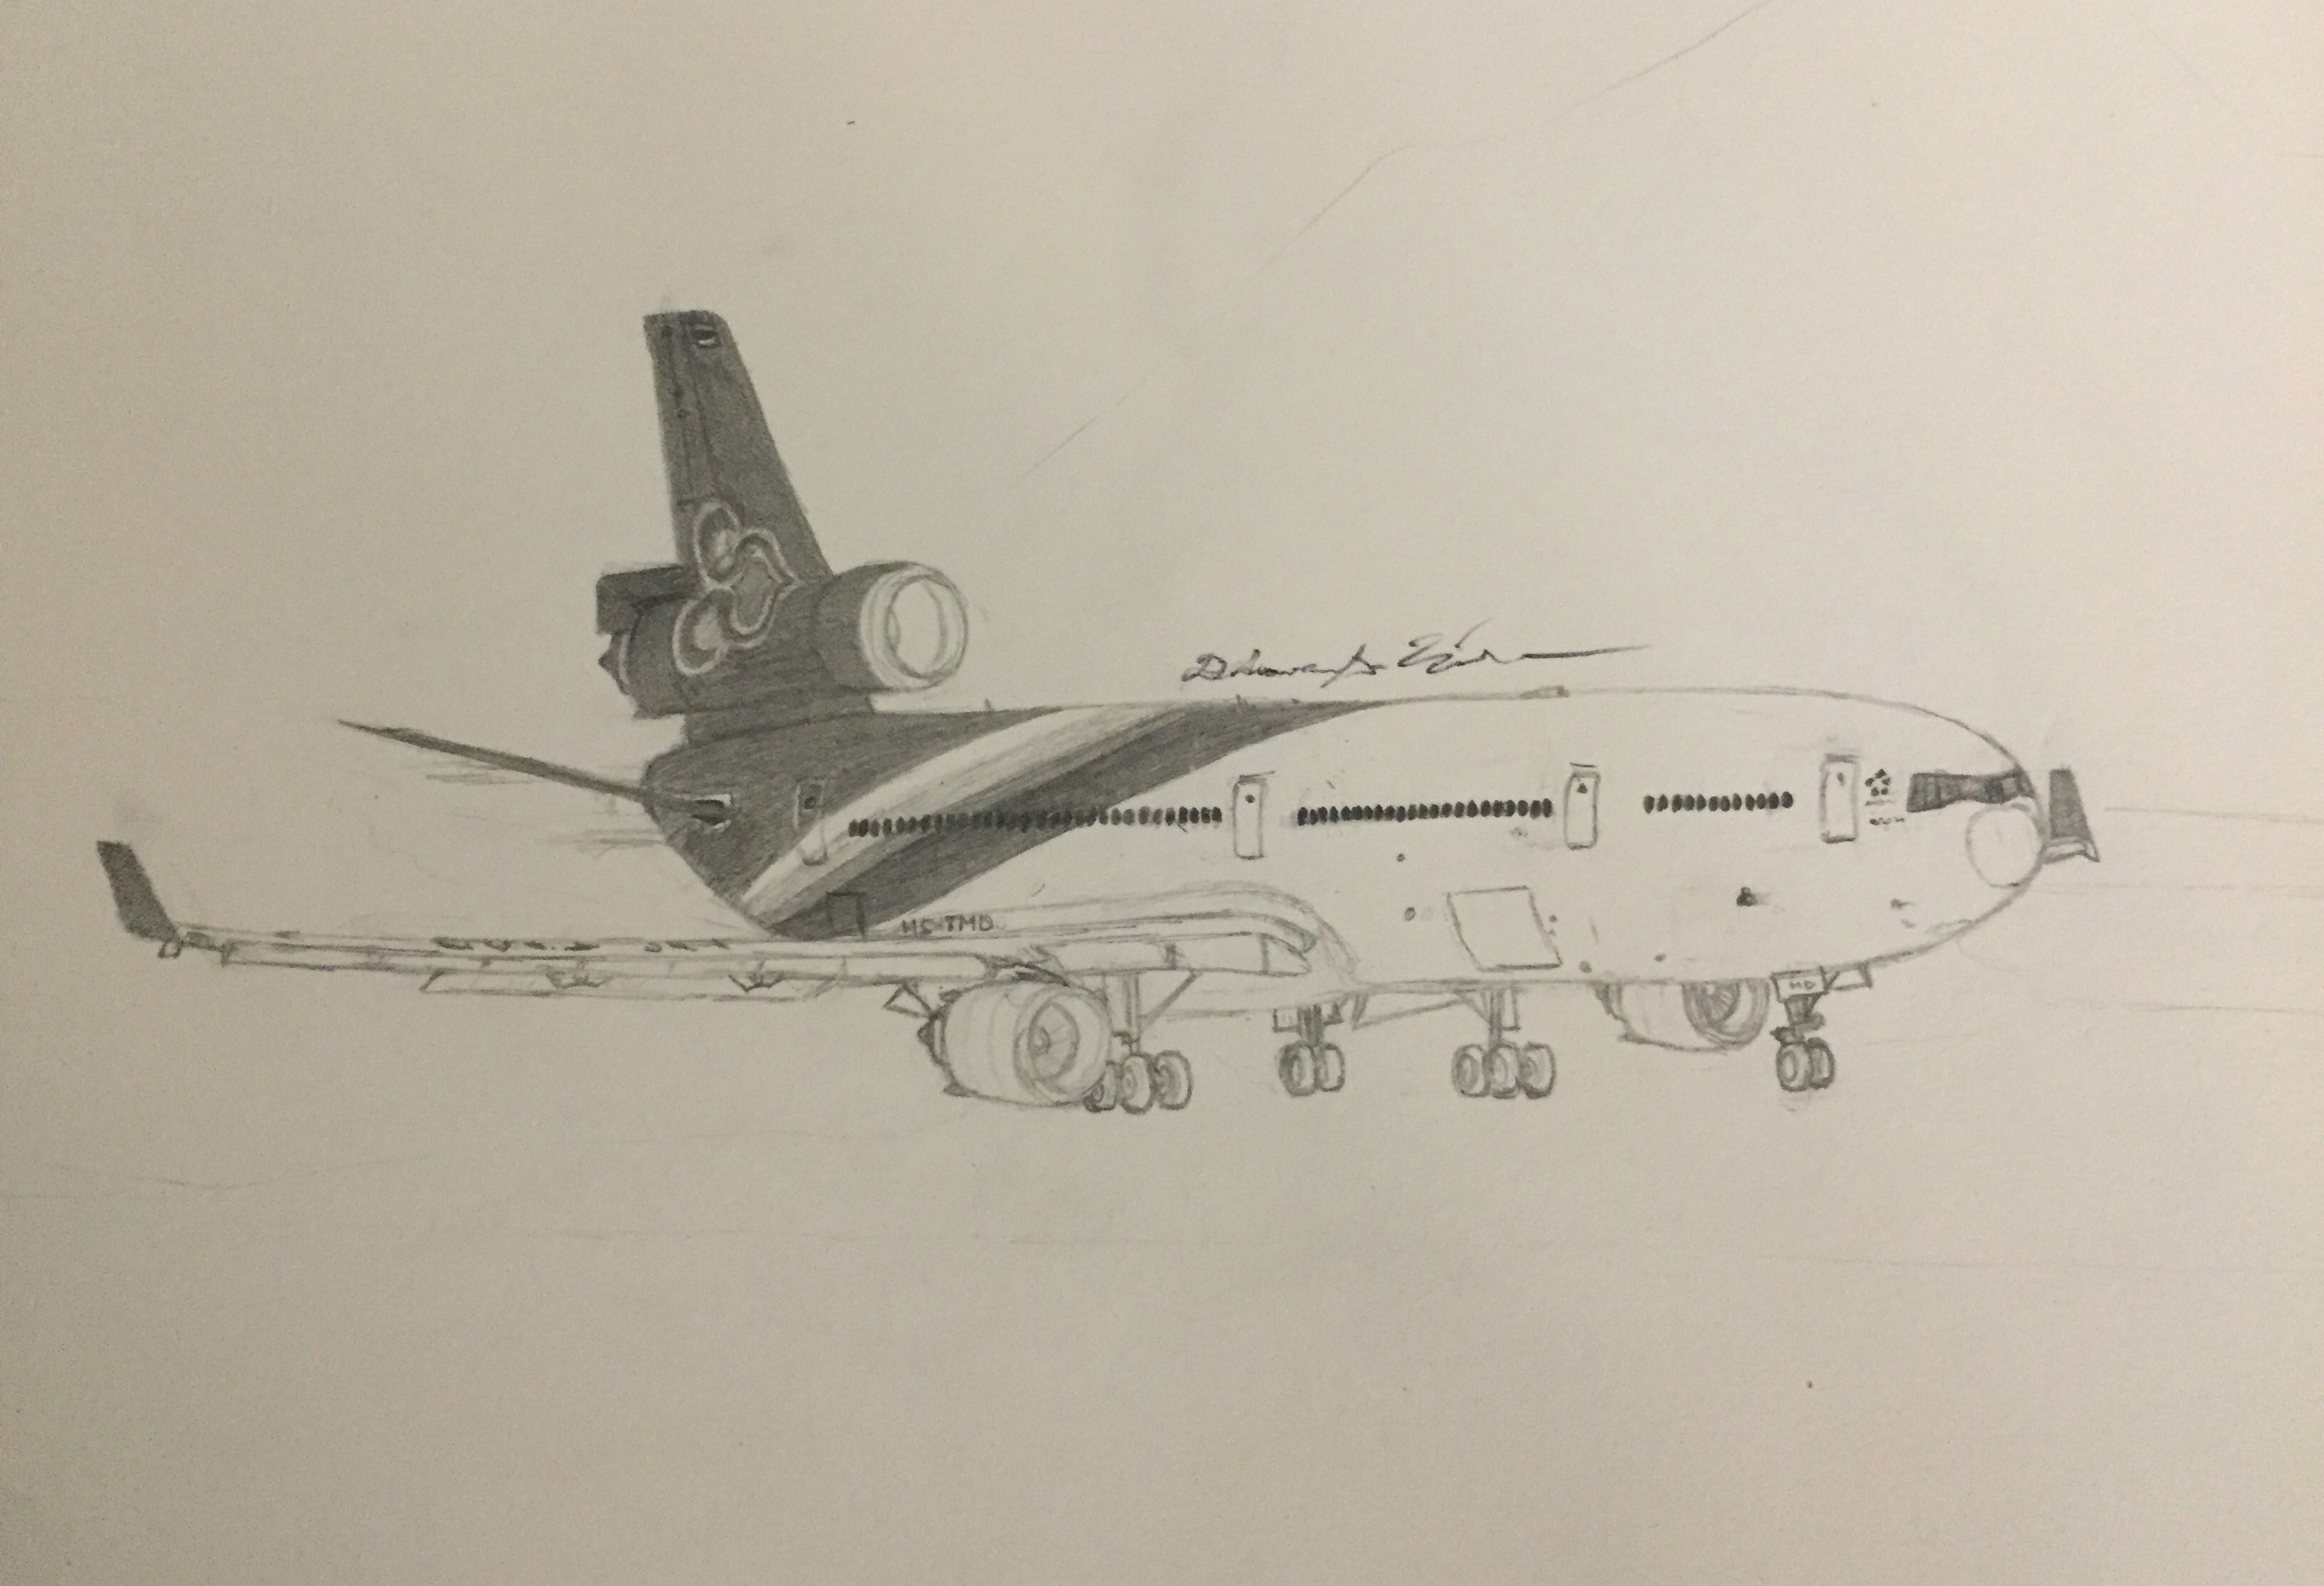 Thai Airways International McDonnell-Douglas MD-11 in progress